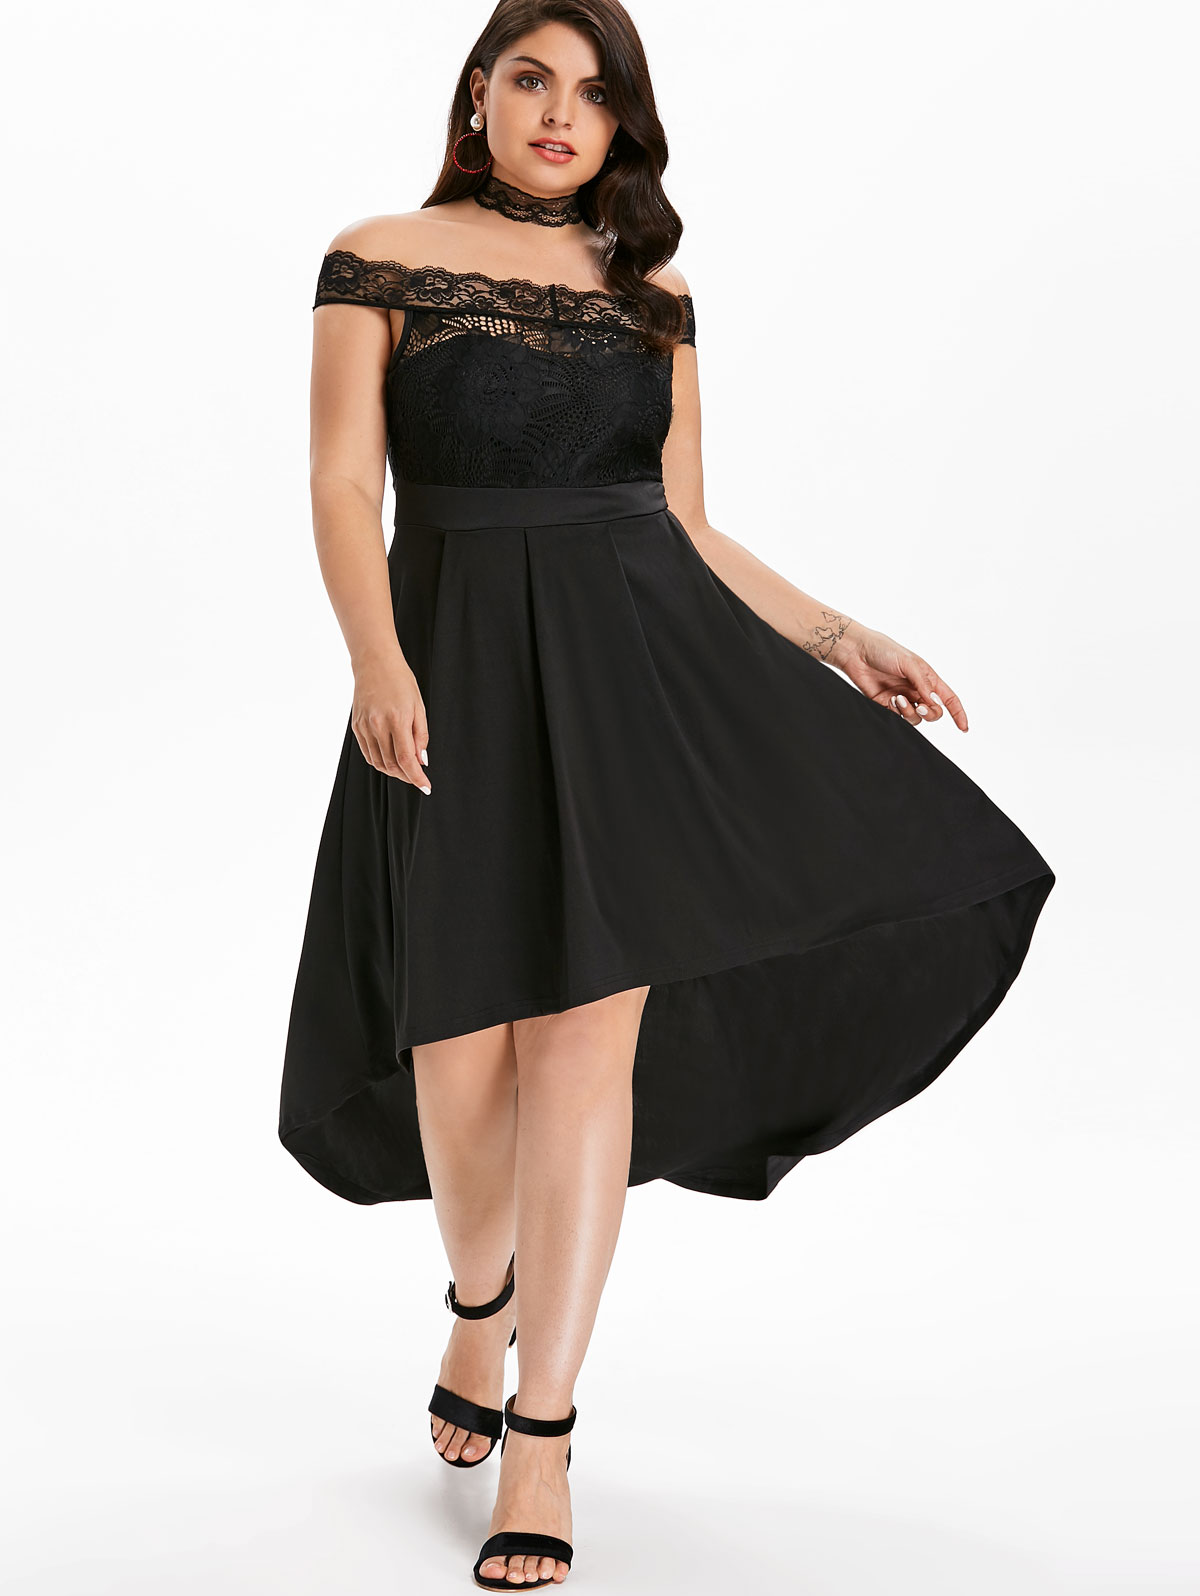 7fd9fcea43 Dresses Length: Ankle-Length Neckline: Off The Shoulder Sleeve Length:  Short Sleeves Embellishment: Lace Pattern Type: Solid With Belt: No